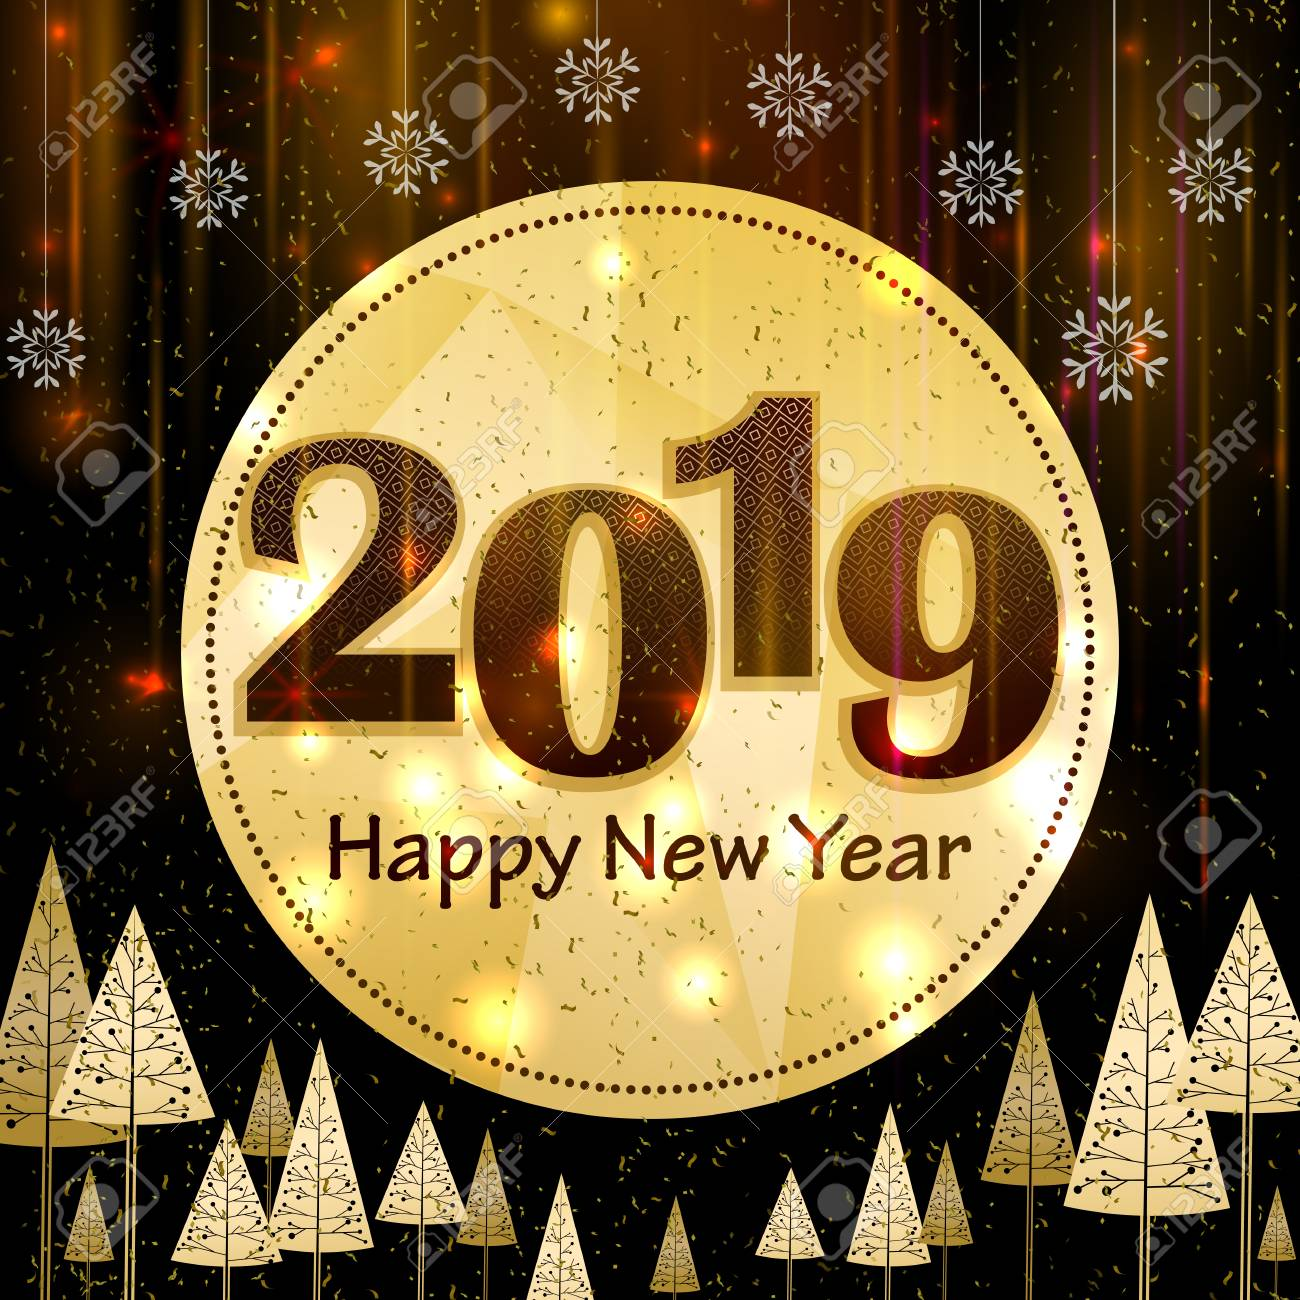 Happy New Year 2019 Wishes Greeting Card Template Background Royalty Free Cliparts Vectors And Stock Illustration Image 112303925